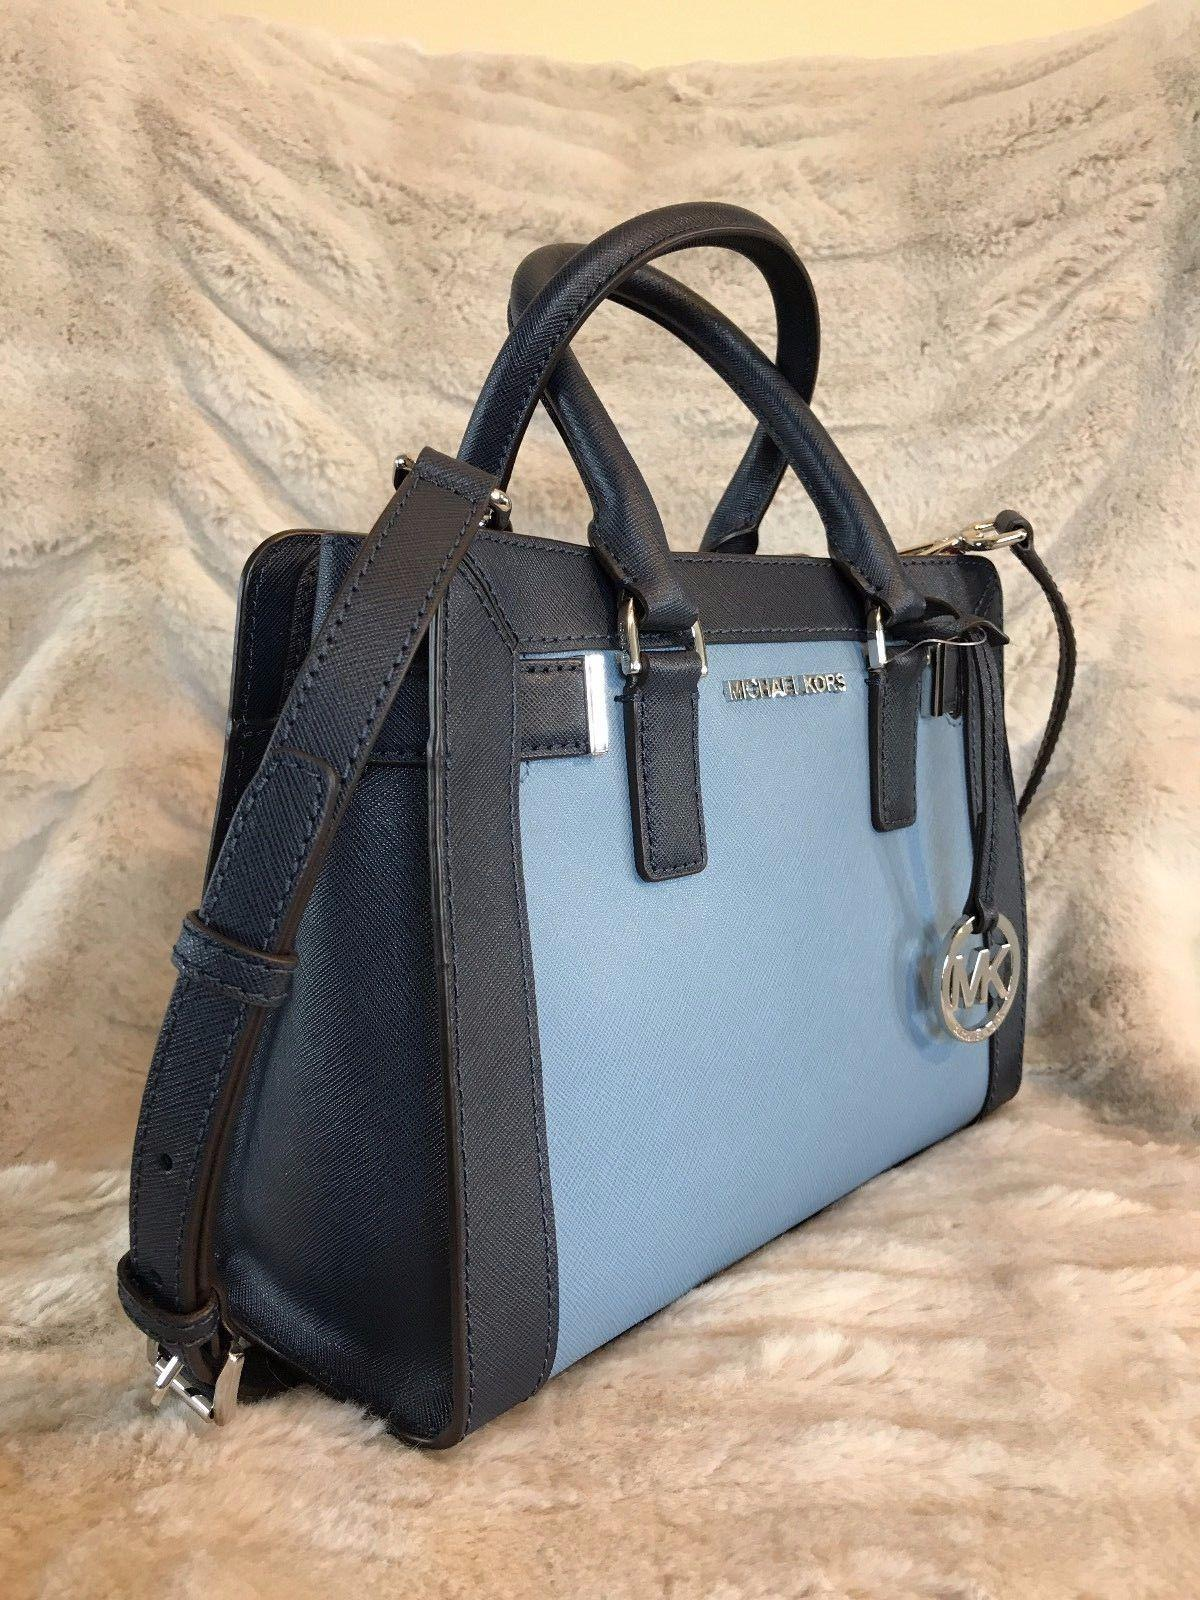 168e957b511d ... czech michael kors dillon crossbody satchel in blue navy. 12345678910  14caf 59970